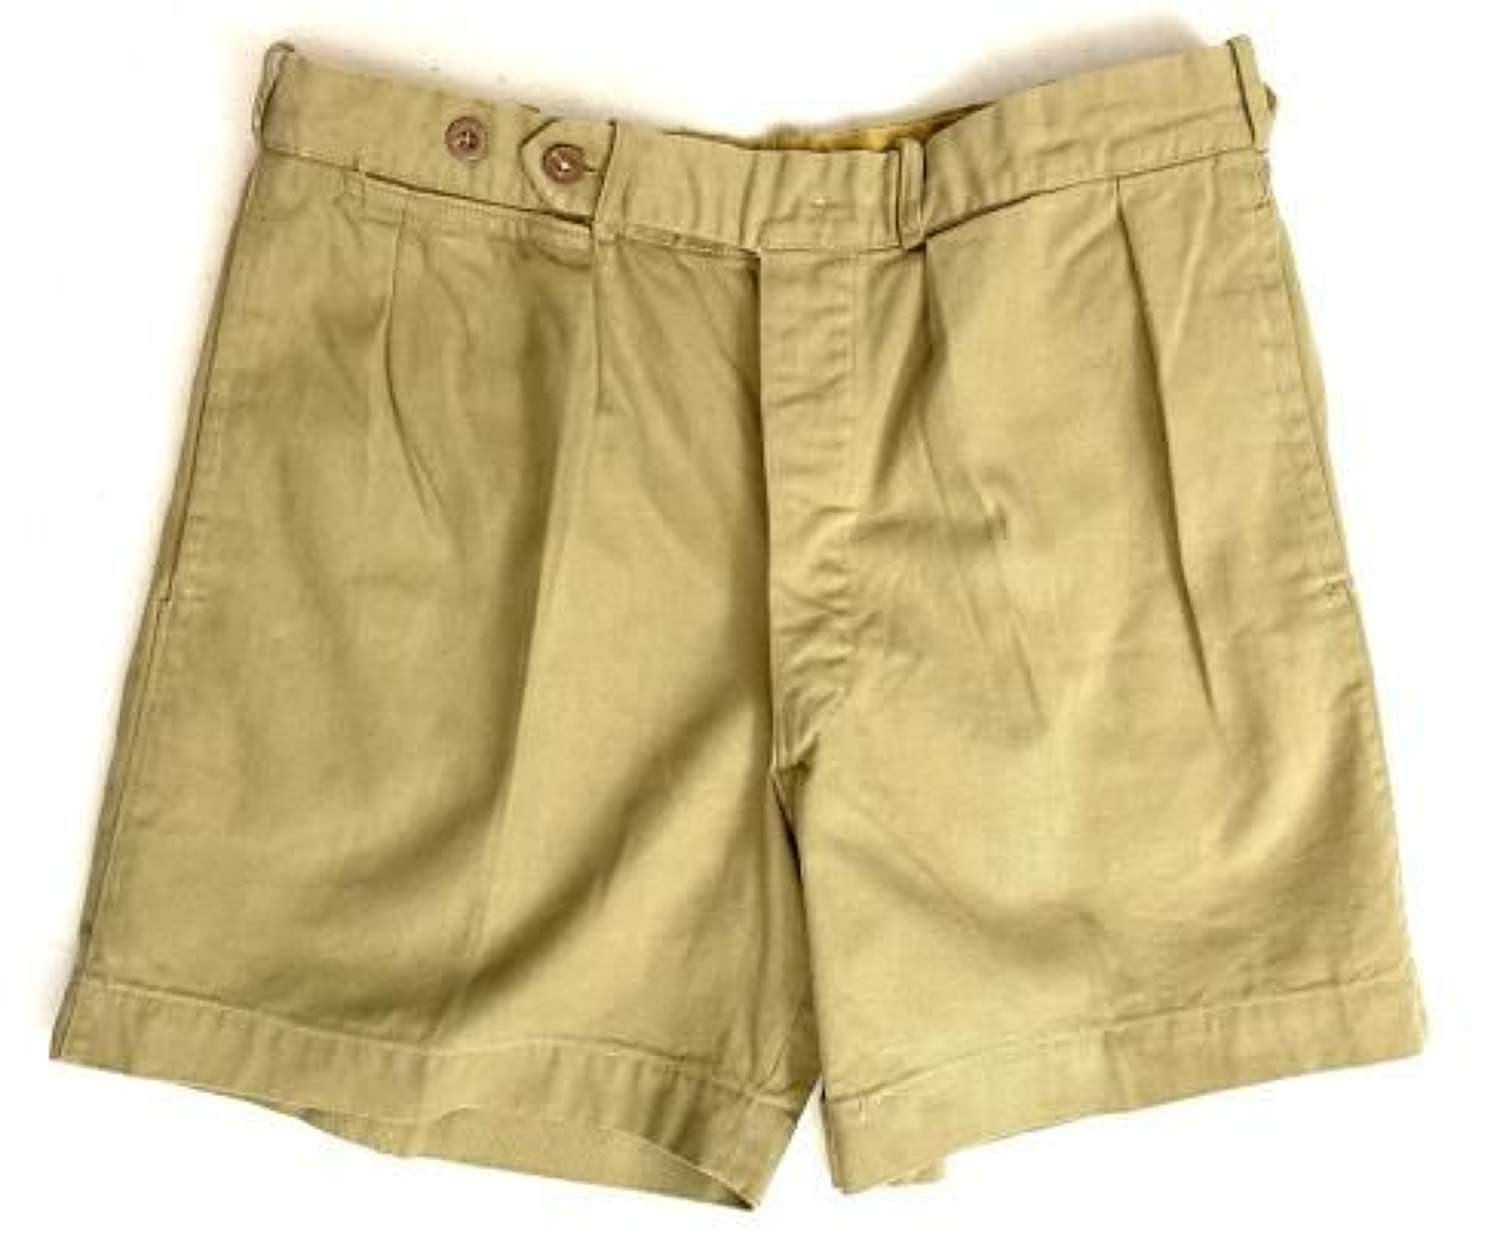 Original British Khaki Drill Shorts - Size 30